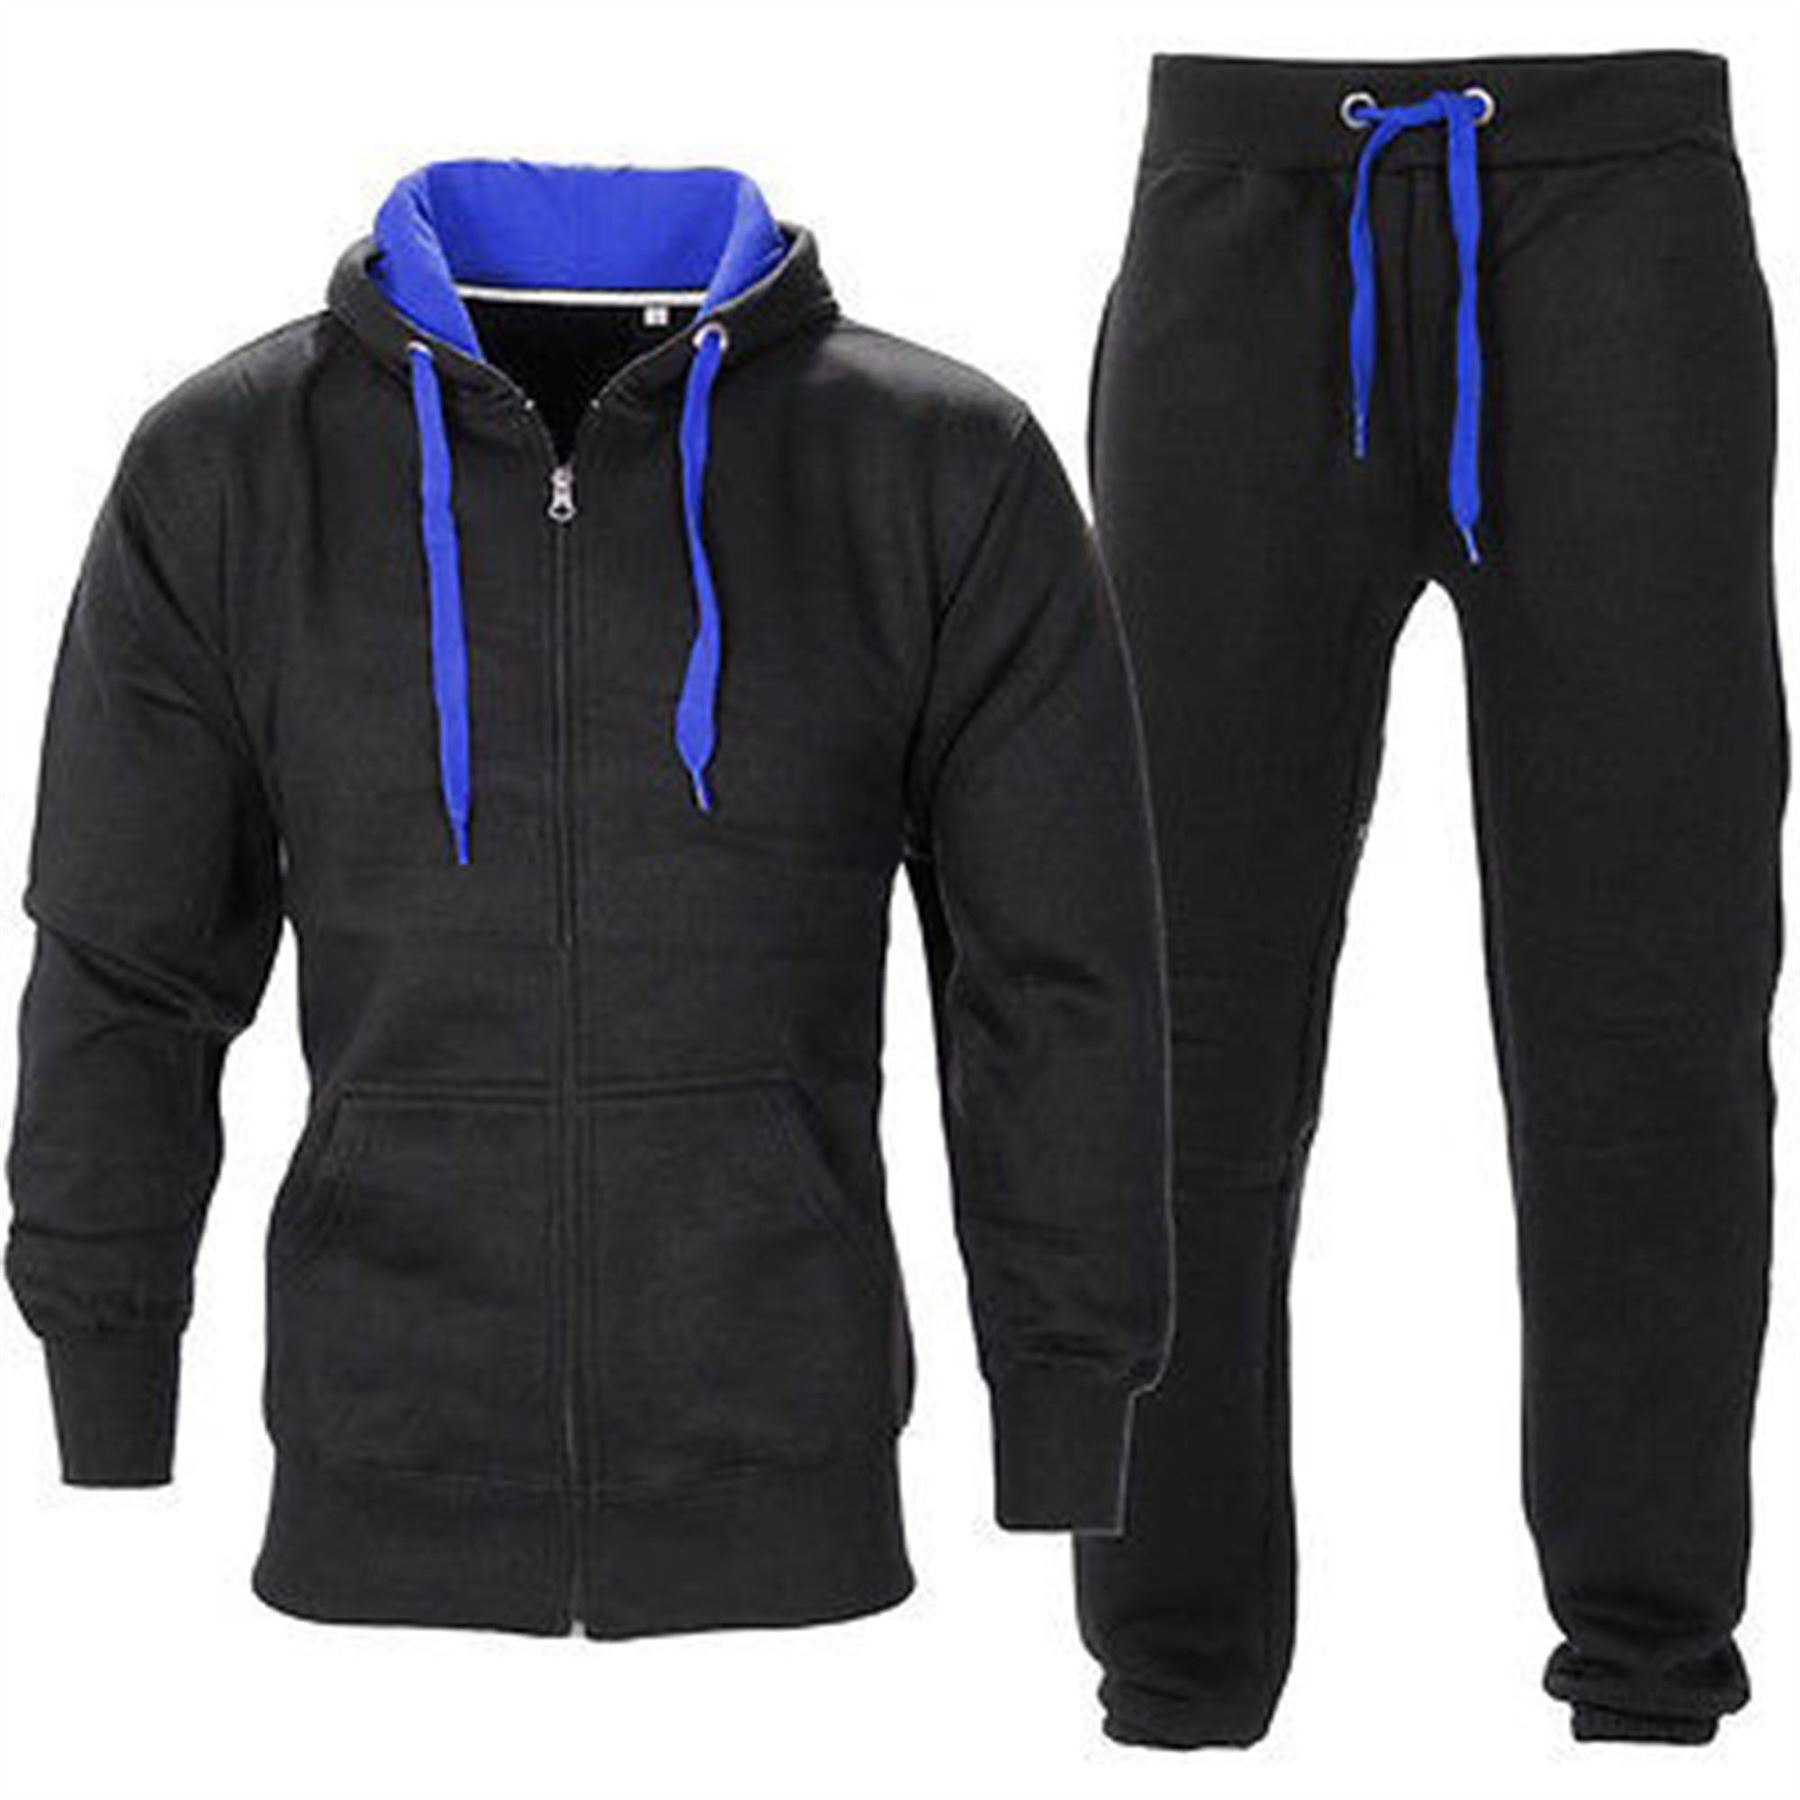 The great thing about tracksuits for men is that, while they're ideal at the gym or during workouts, they look terrific on a day-to-day basis as well. They also make it easy to go from the gym to a .